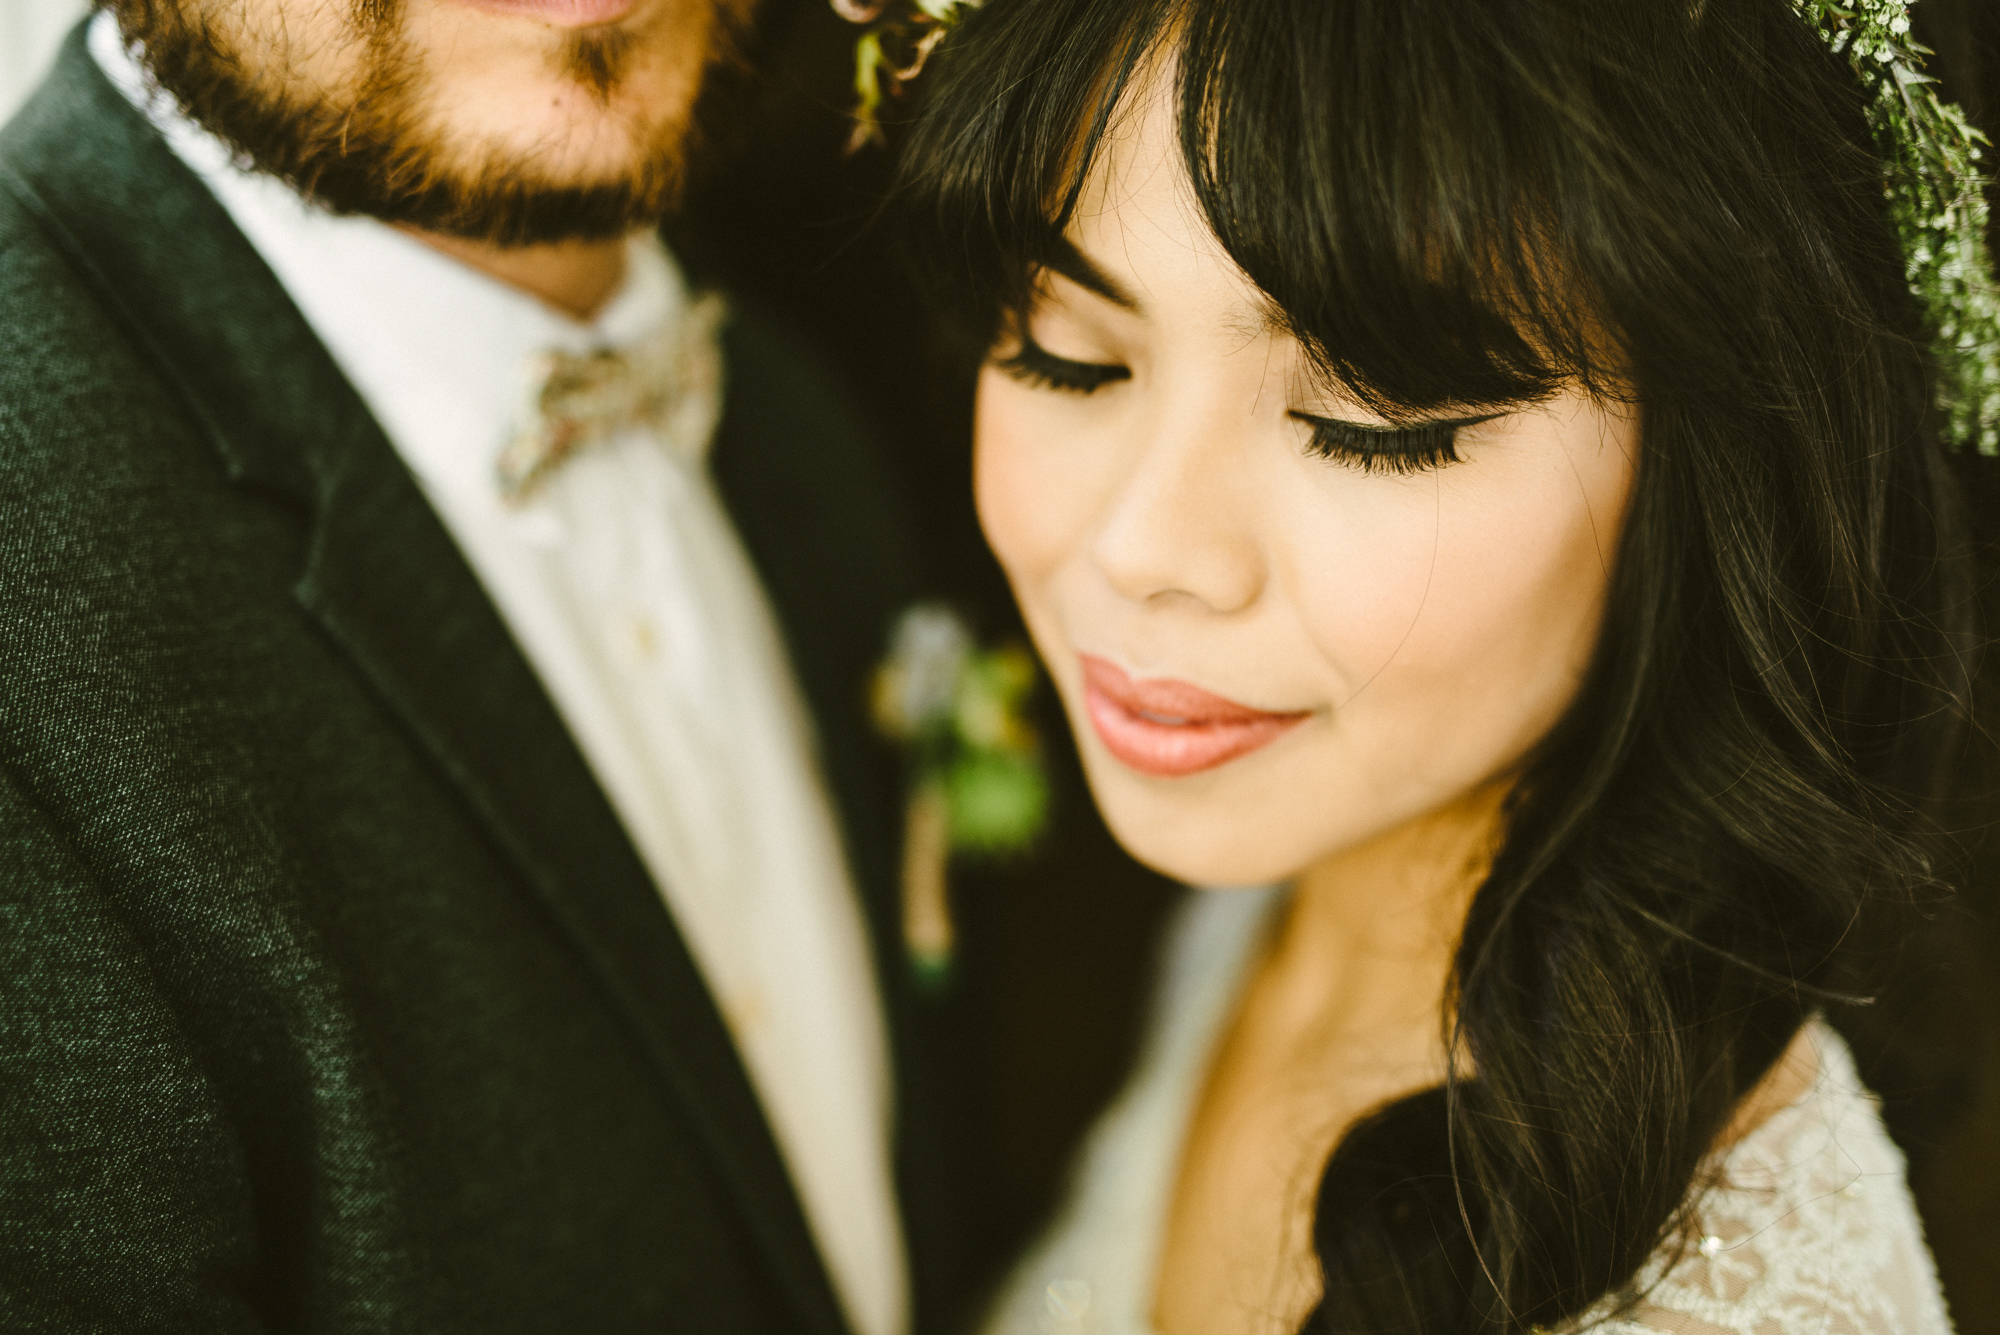 Isaiah & Taylor Photography - Los Angeles - Destination Wedding Photographers - Heritage Square Museum -42.jpg